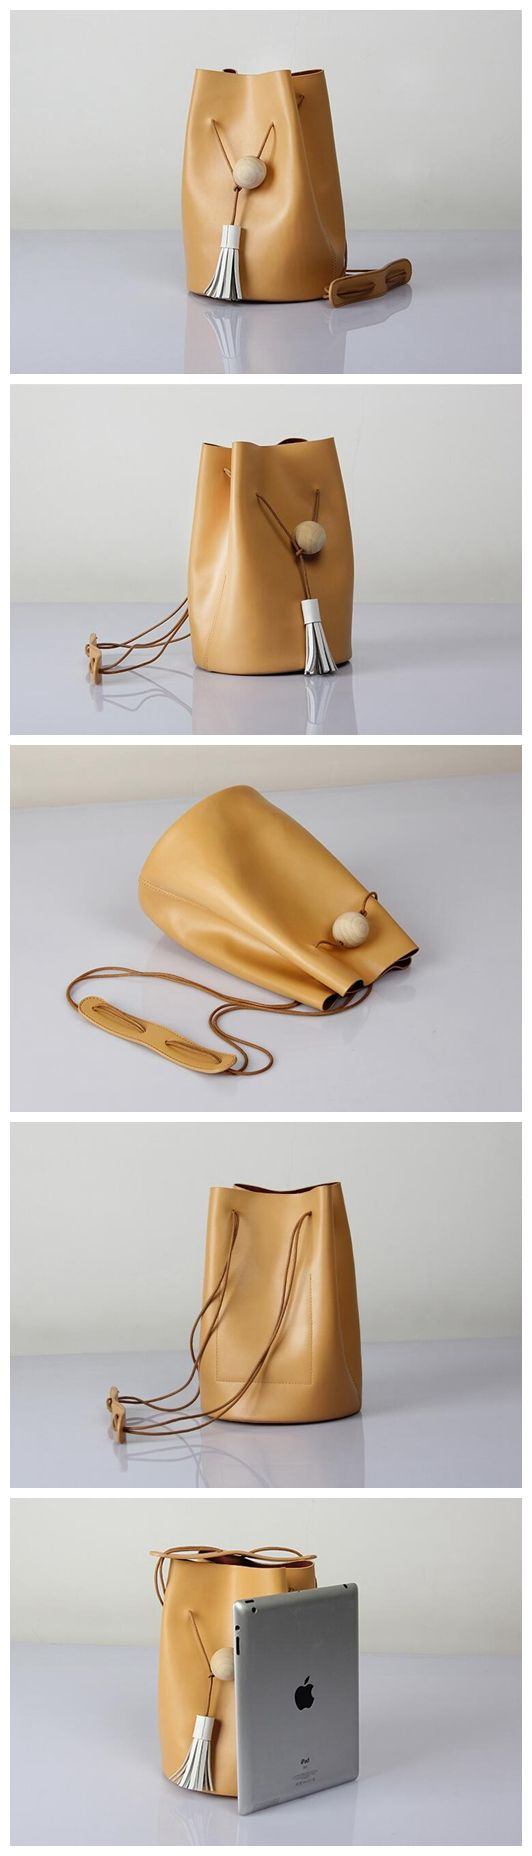 Genuine Leather Bucket Bag Shoulder Bag Women's Fashion Bag Leather Crossbody Bag Messenger Small Satchel 14126 Overview: Design: Genuine Leather Bucket Bag In Stock: 4-5 days For Making Include: Only